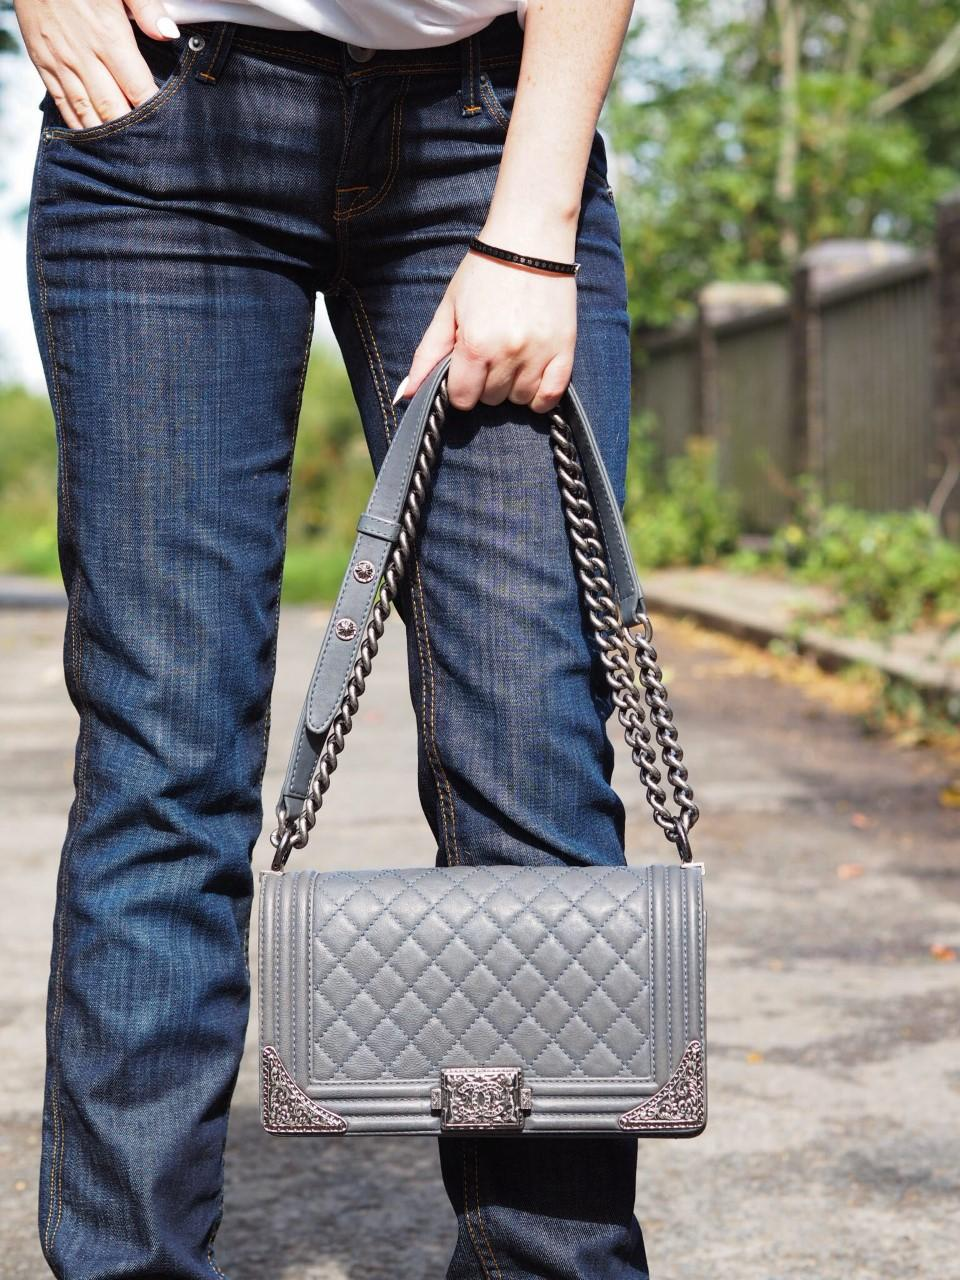 outfit photo of dark blue jeans and grey Chanel boy bag